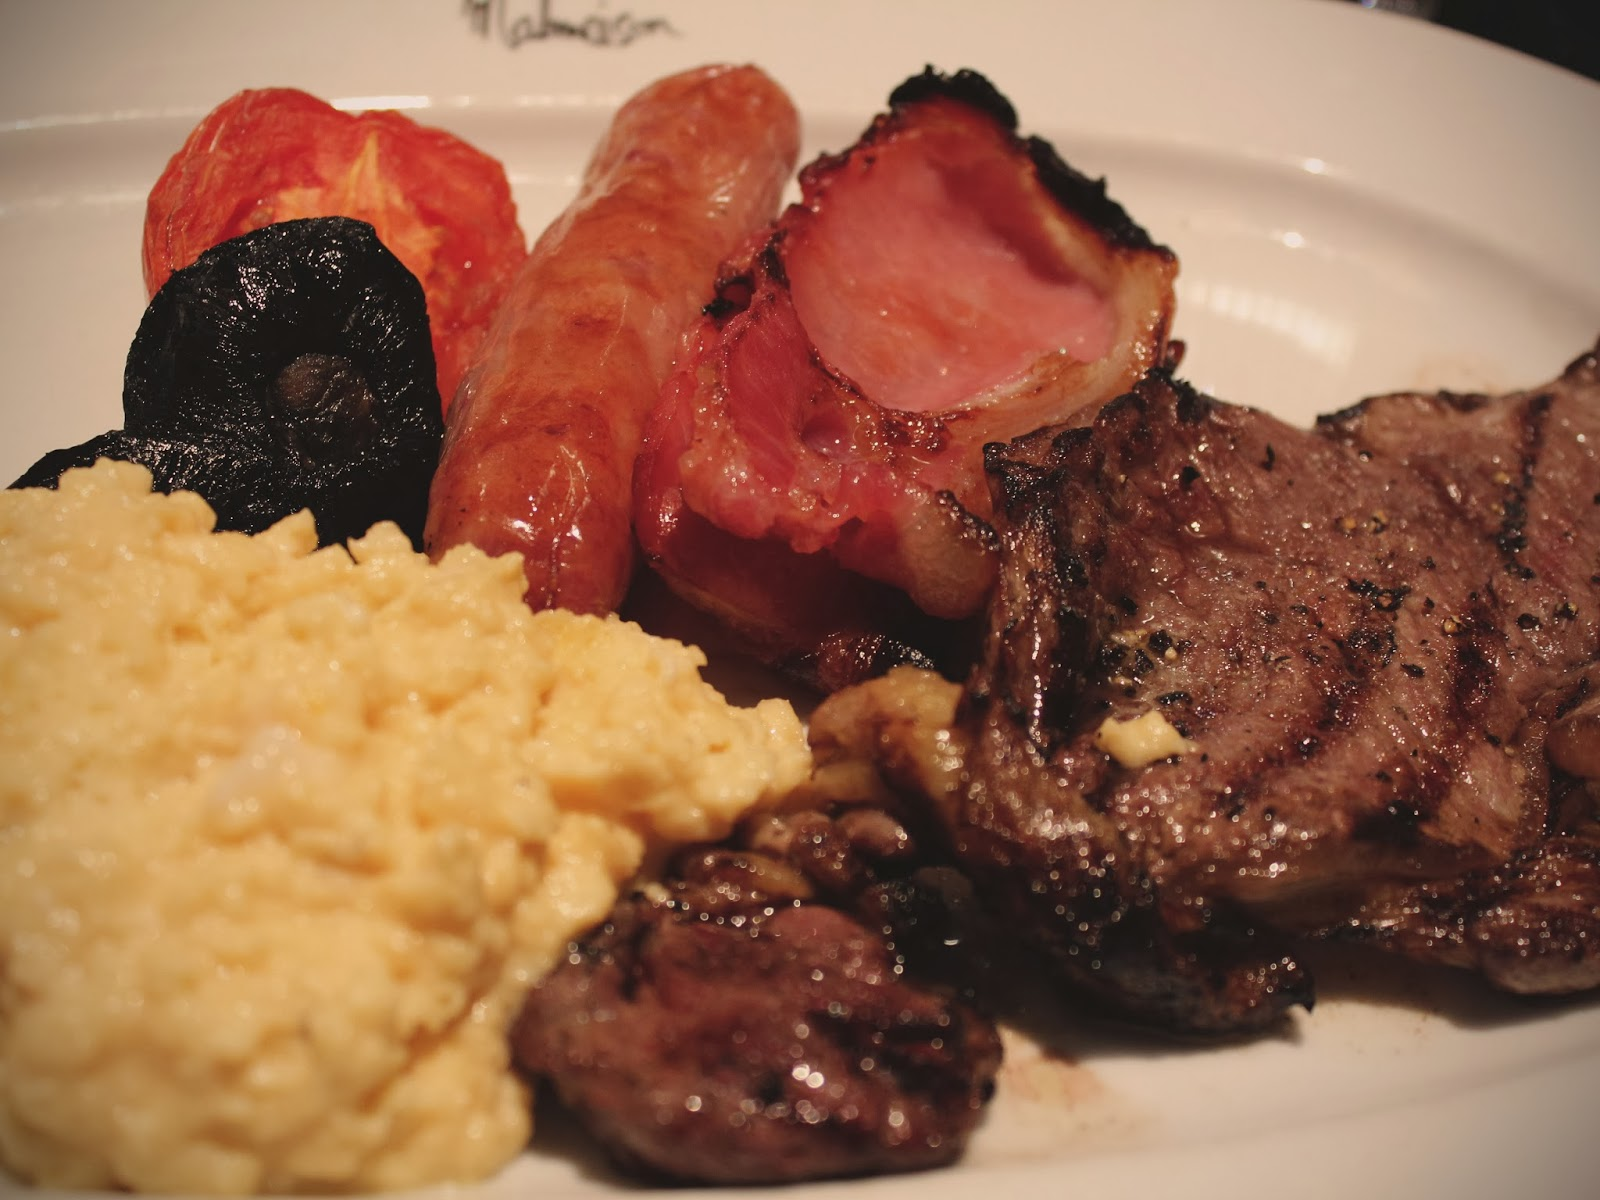 Big Brunch Breakfast at the Malmaison Hotel in Birmingham